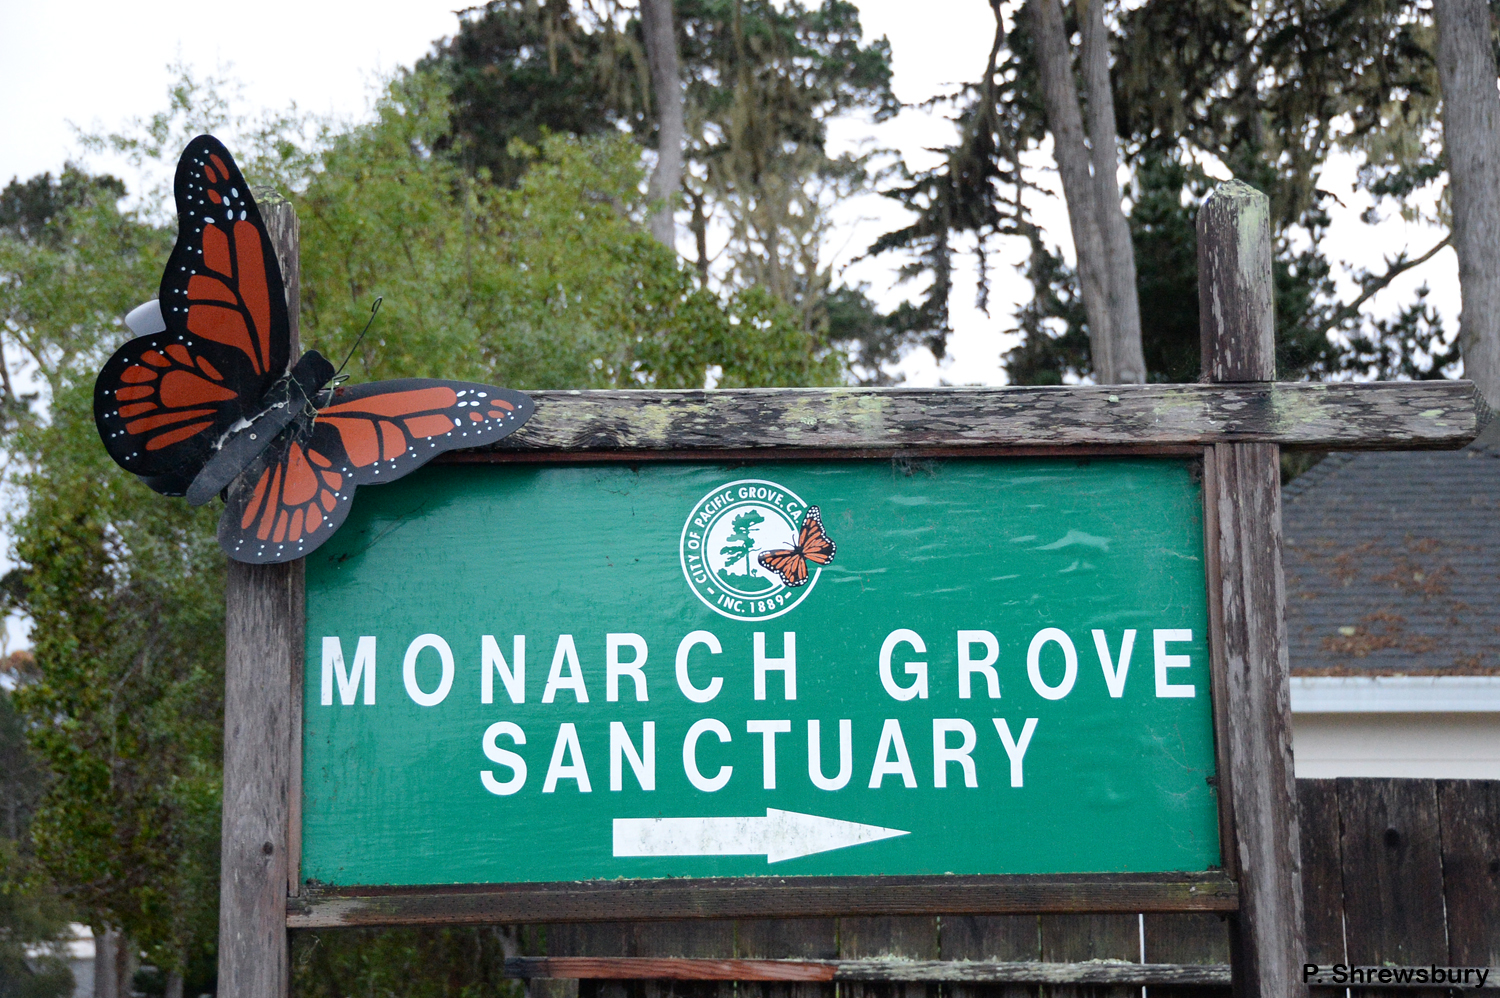 "800x600      In a residential section of Pacific Grove, CA, small signs direct visitors to the Monarch Sanctuary.     Normal   0           false   false   false     EN-US   X-NONE   X-NONE                                  MicrosoftInternetExplorer4                                                                                                                                                                                                                                                                                                                                       /* Style Definitions */  table.MsoNormalTable 	{mso-style-name:""Table Normal""; 	mso-tstyle-rowband-size:0; 	mso-tstyle-colband-size:0; 	mso-style-noshow:yes; 	mso-style-priority:99; 	mso-style-parent:""""; 	mso-padding-alt:0in 5.4pt 0in 5.4pt; 	mso-para-margin:0in; 	mso-para-margin-bottom:.0001pt; 	mso-pagination:widow-orphan; 	font-size:10.0pt; 	font-family:""Times New Roman"",""serif"";}"